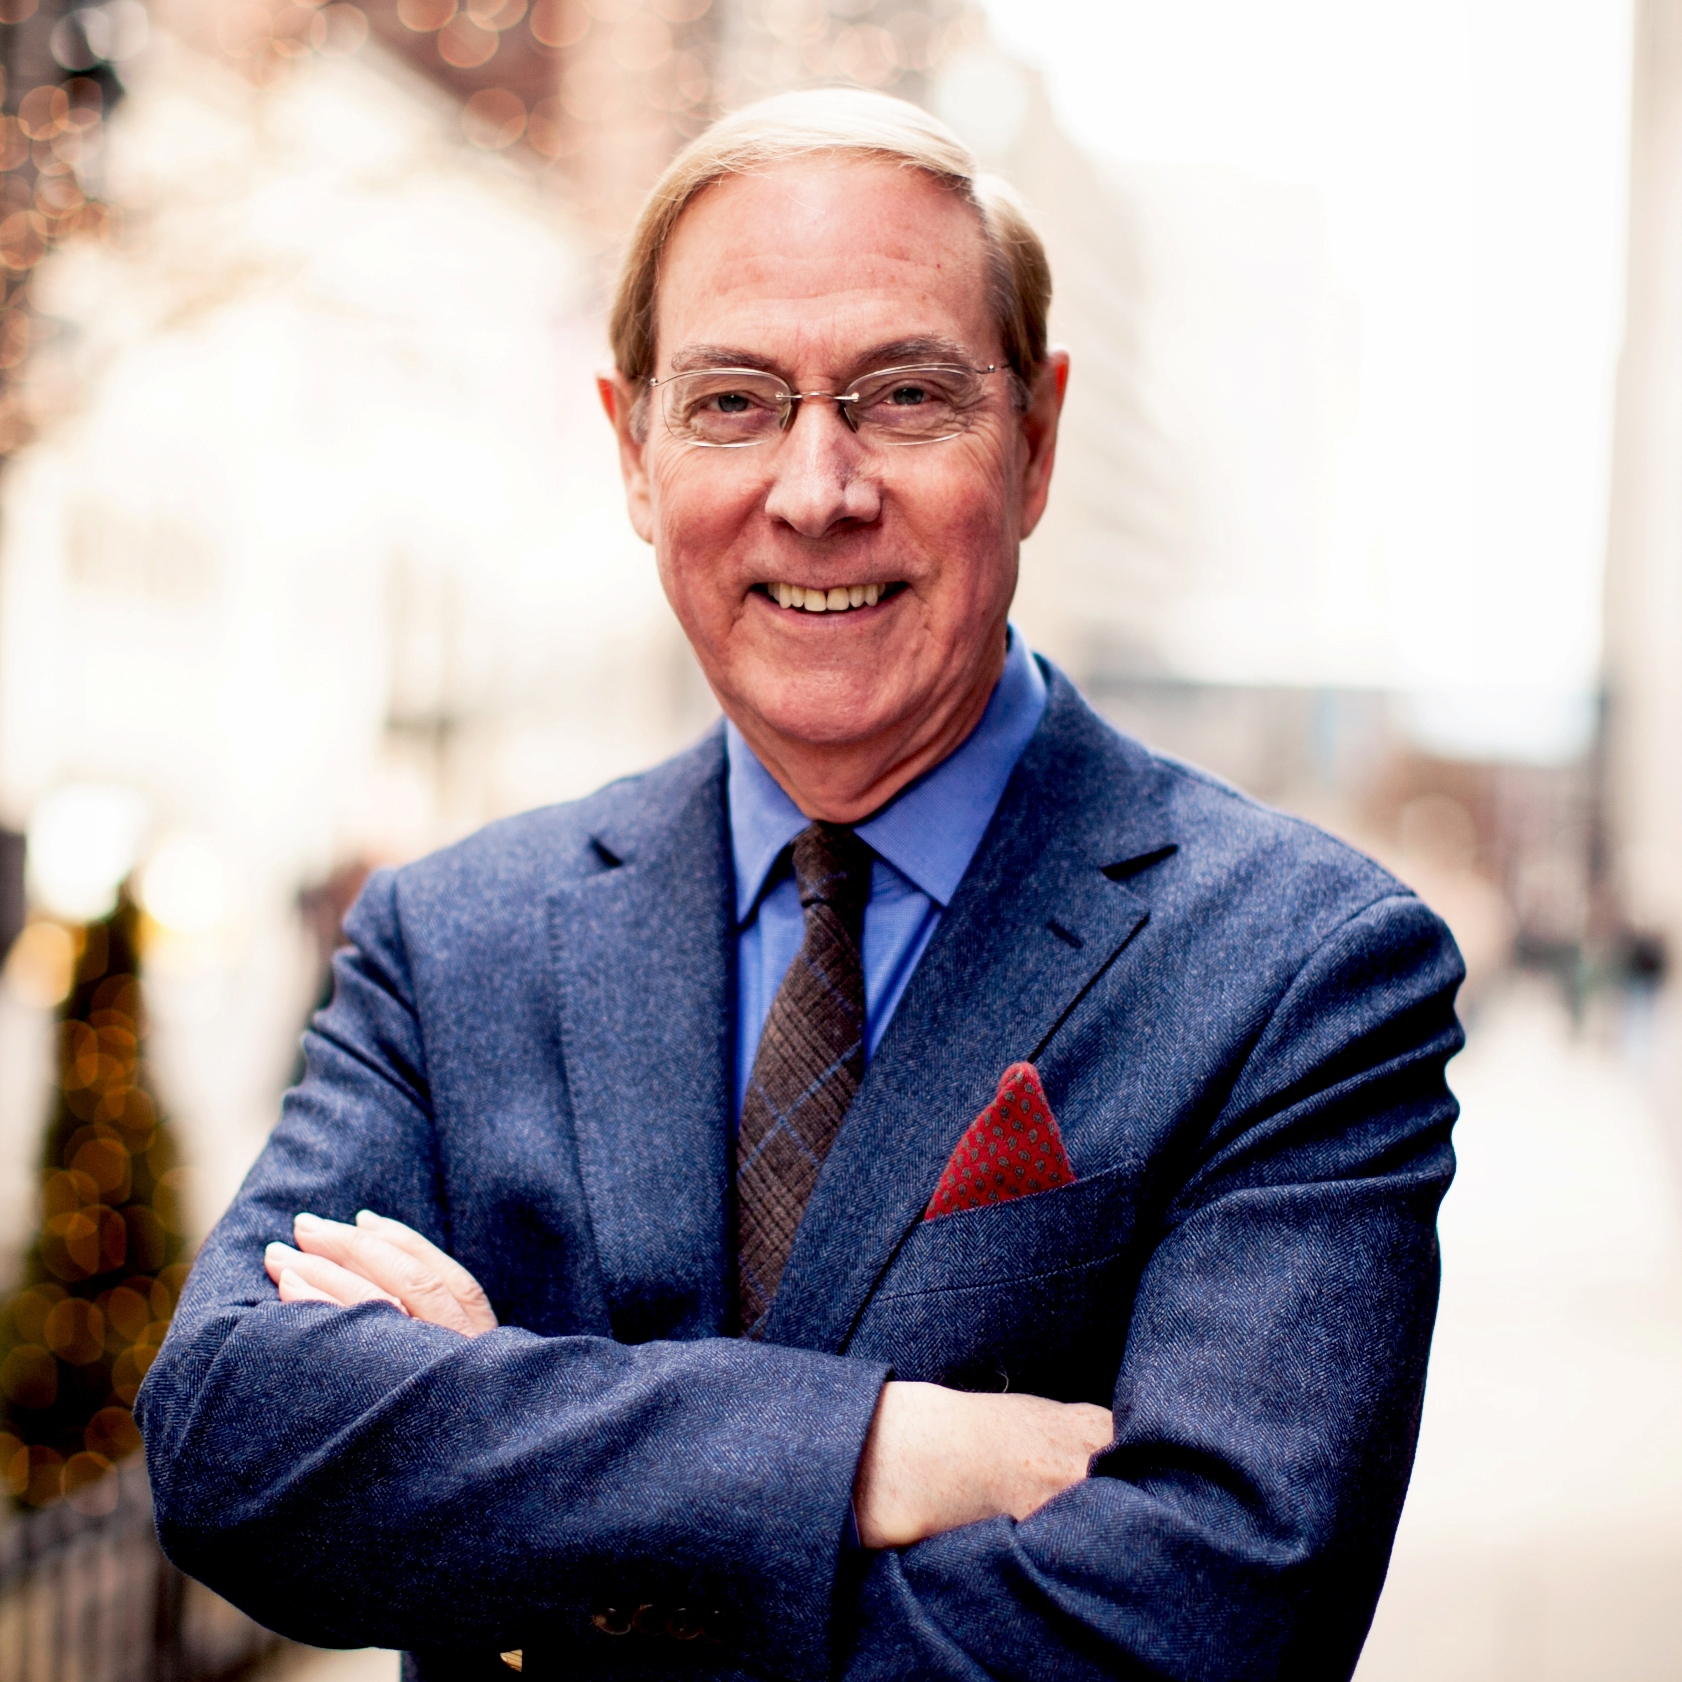 Bestselling author Dr. Gary Chapman